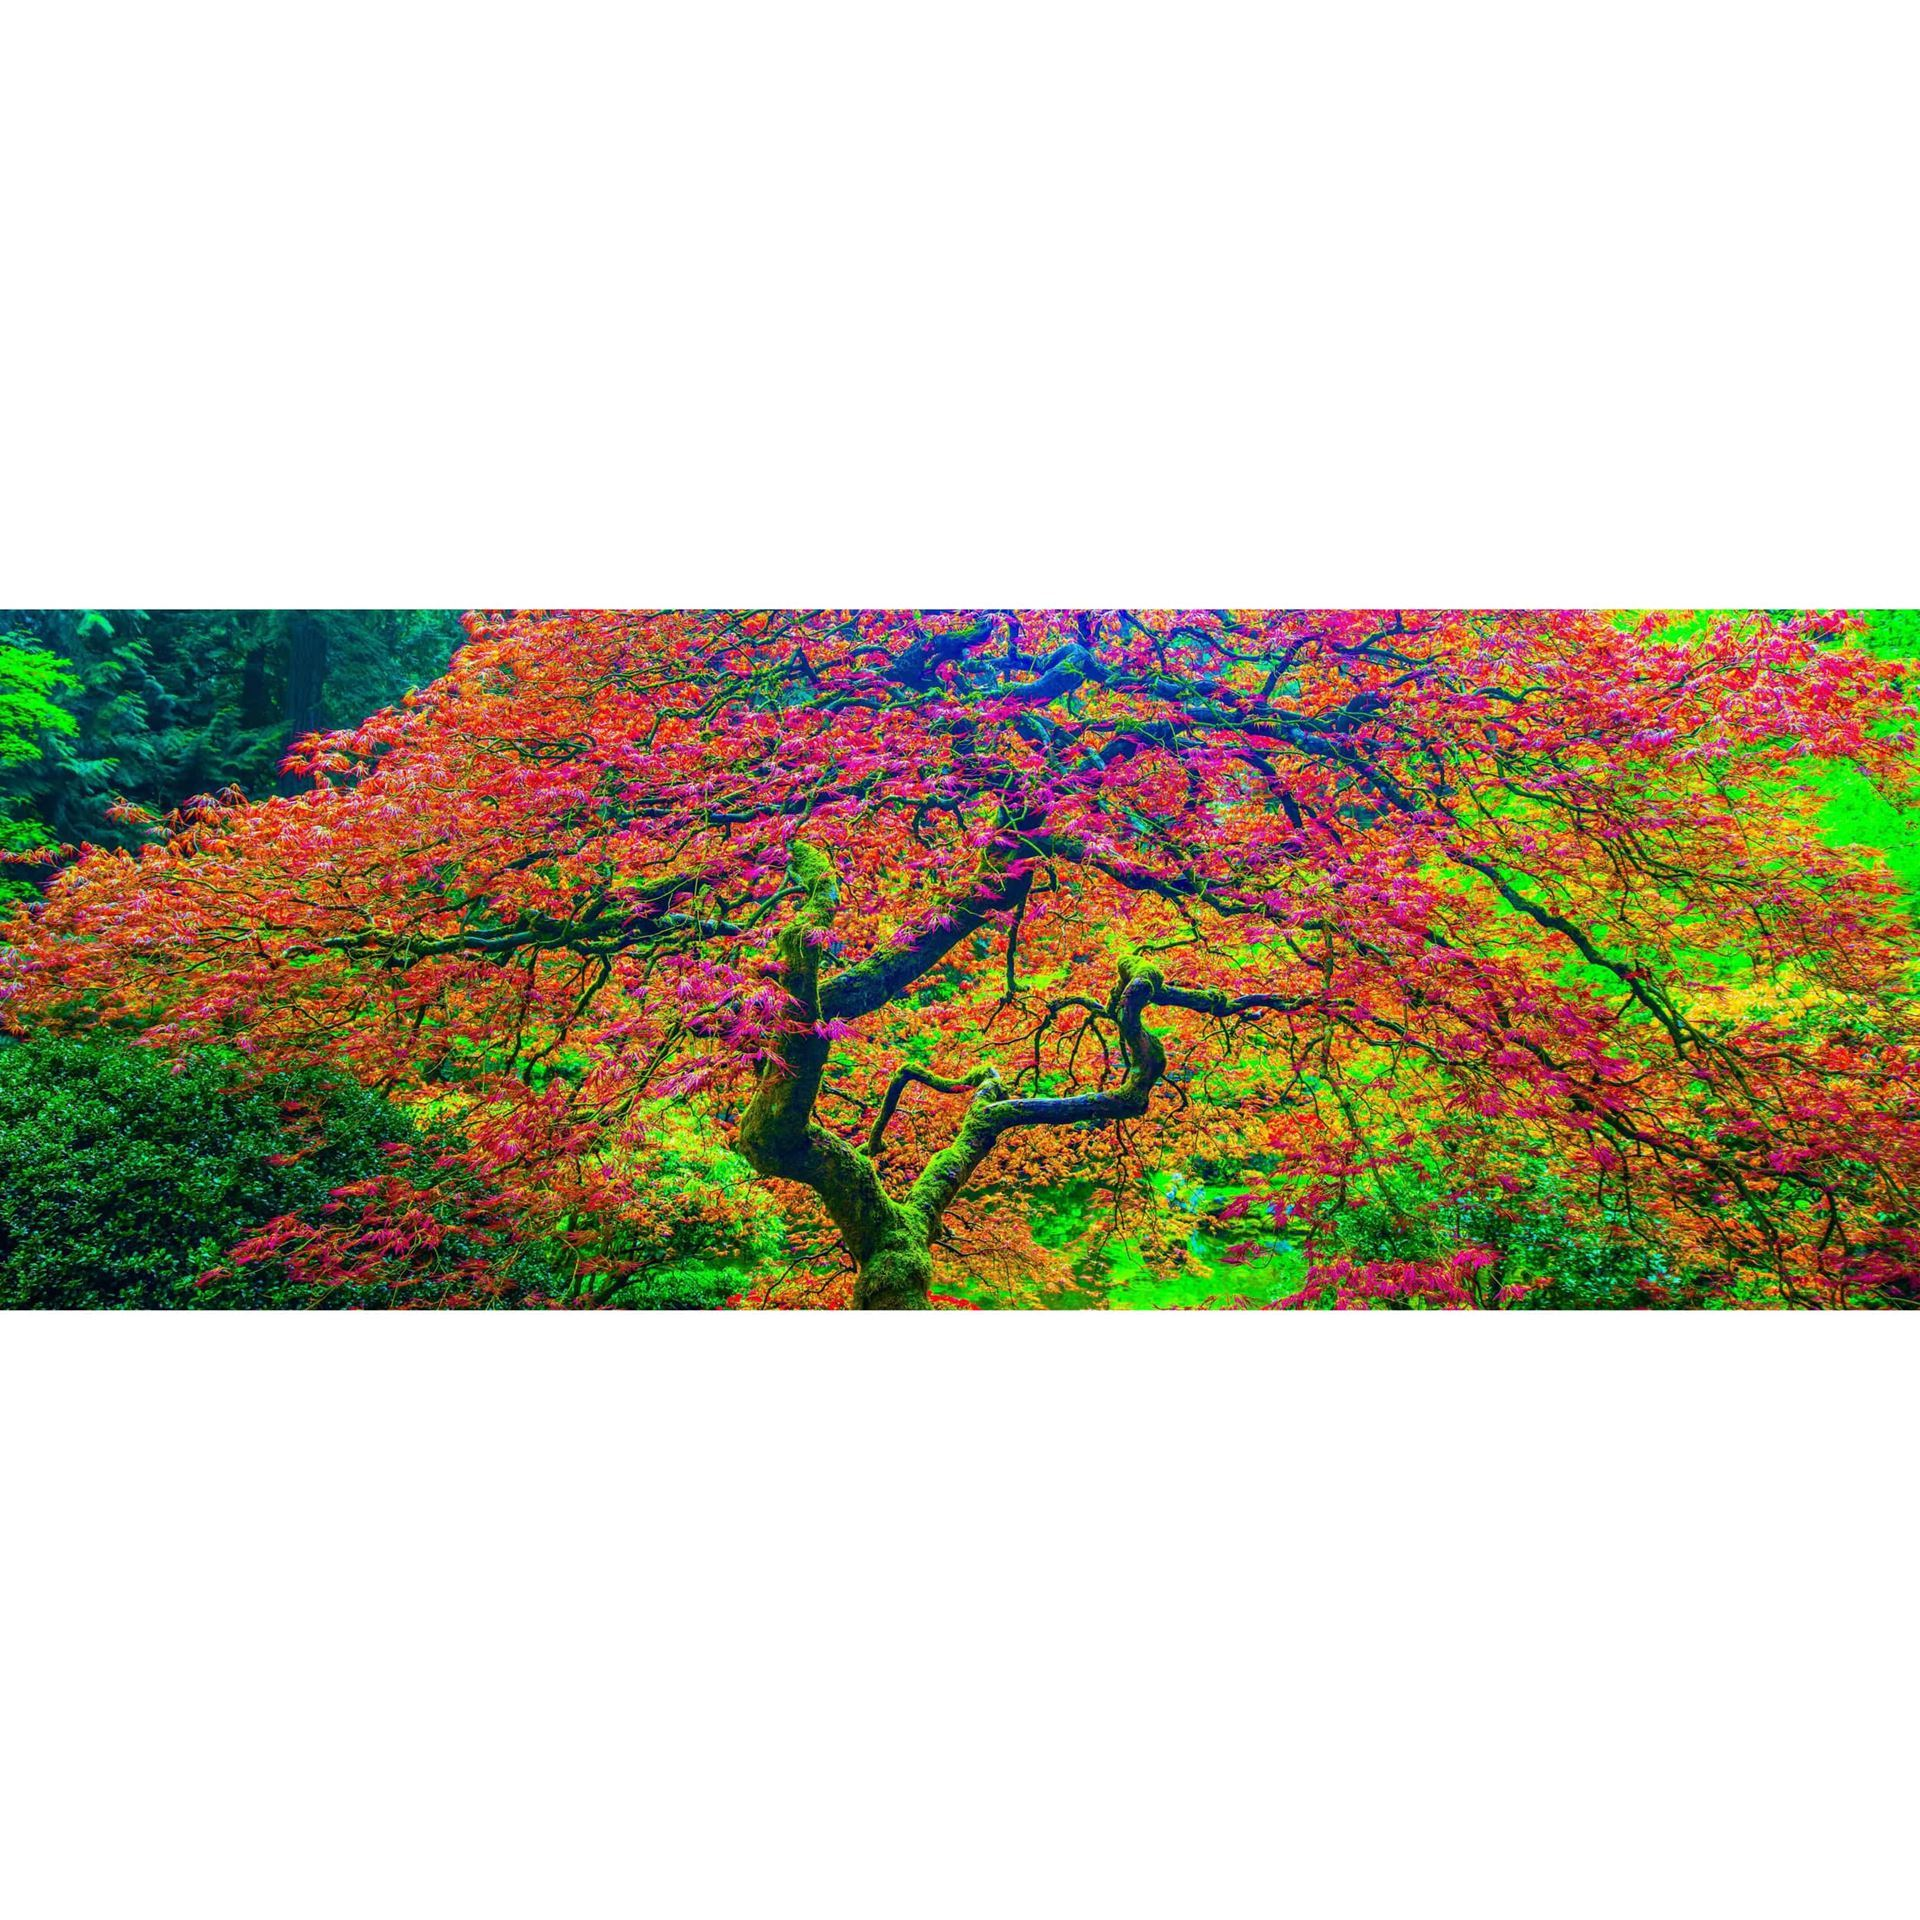 Japanese Maple 2 32x48